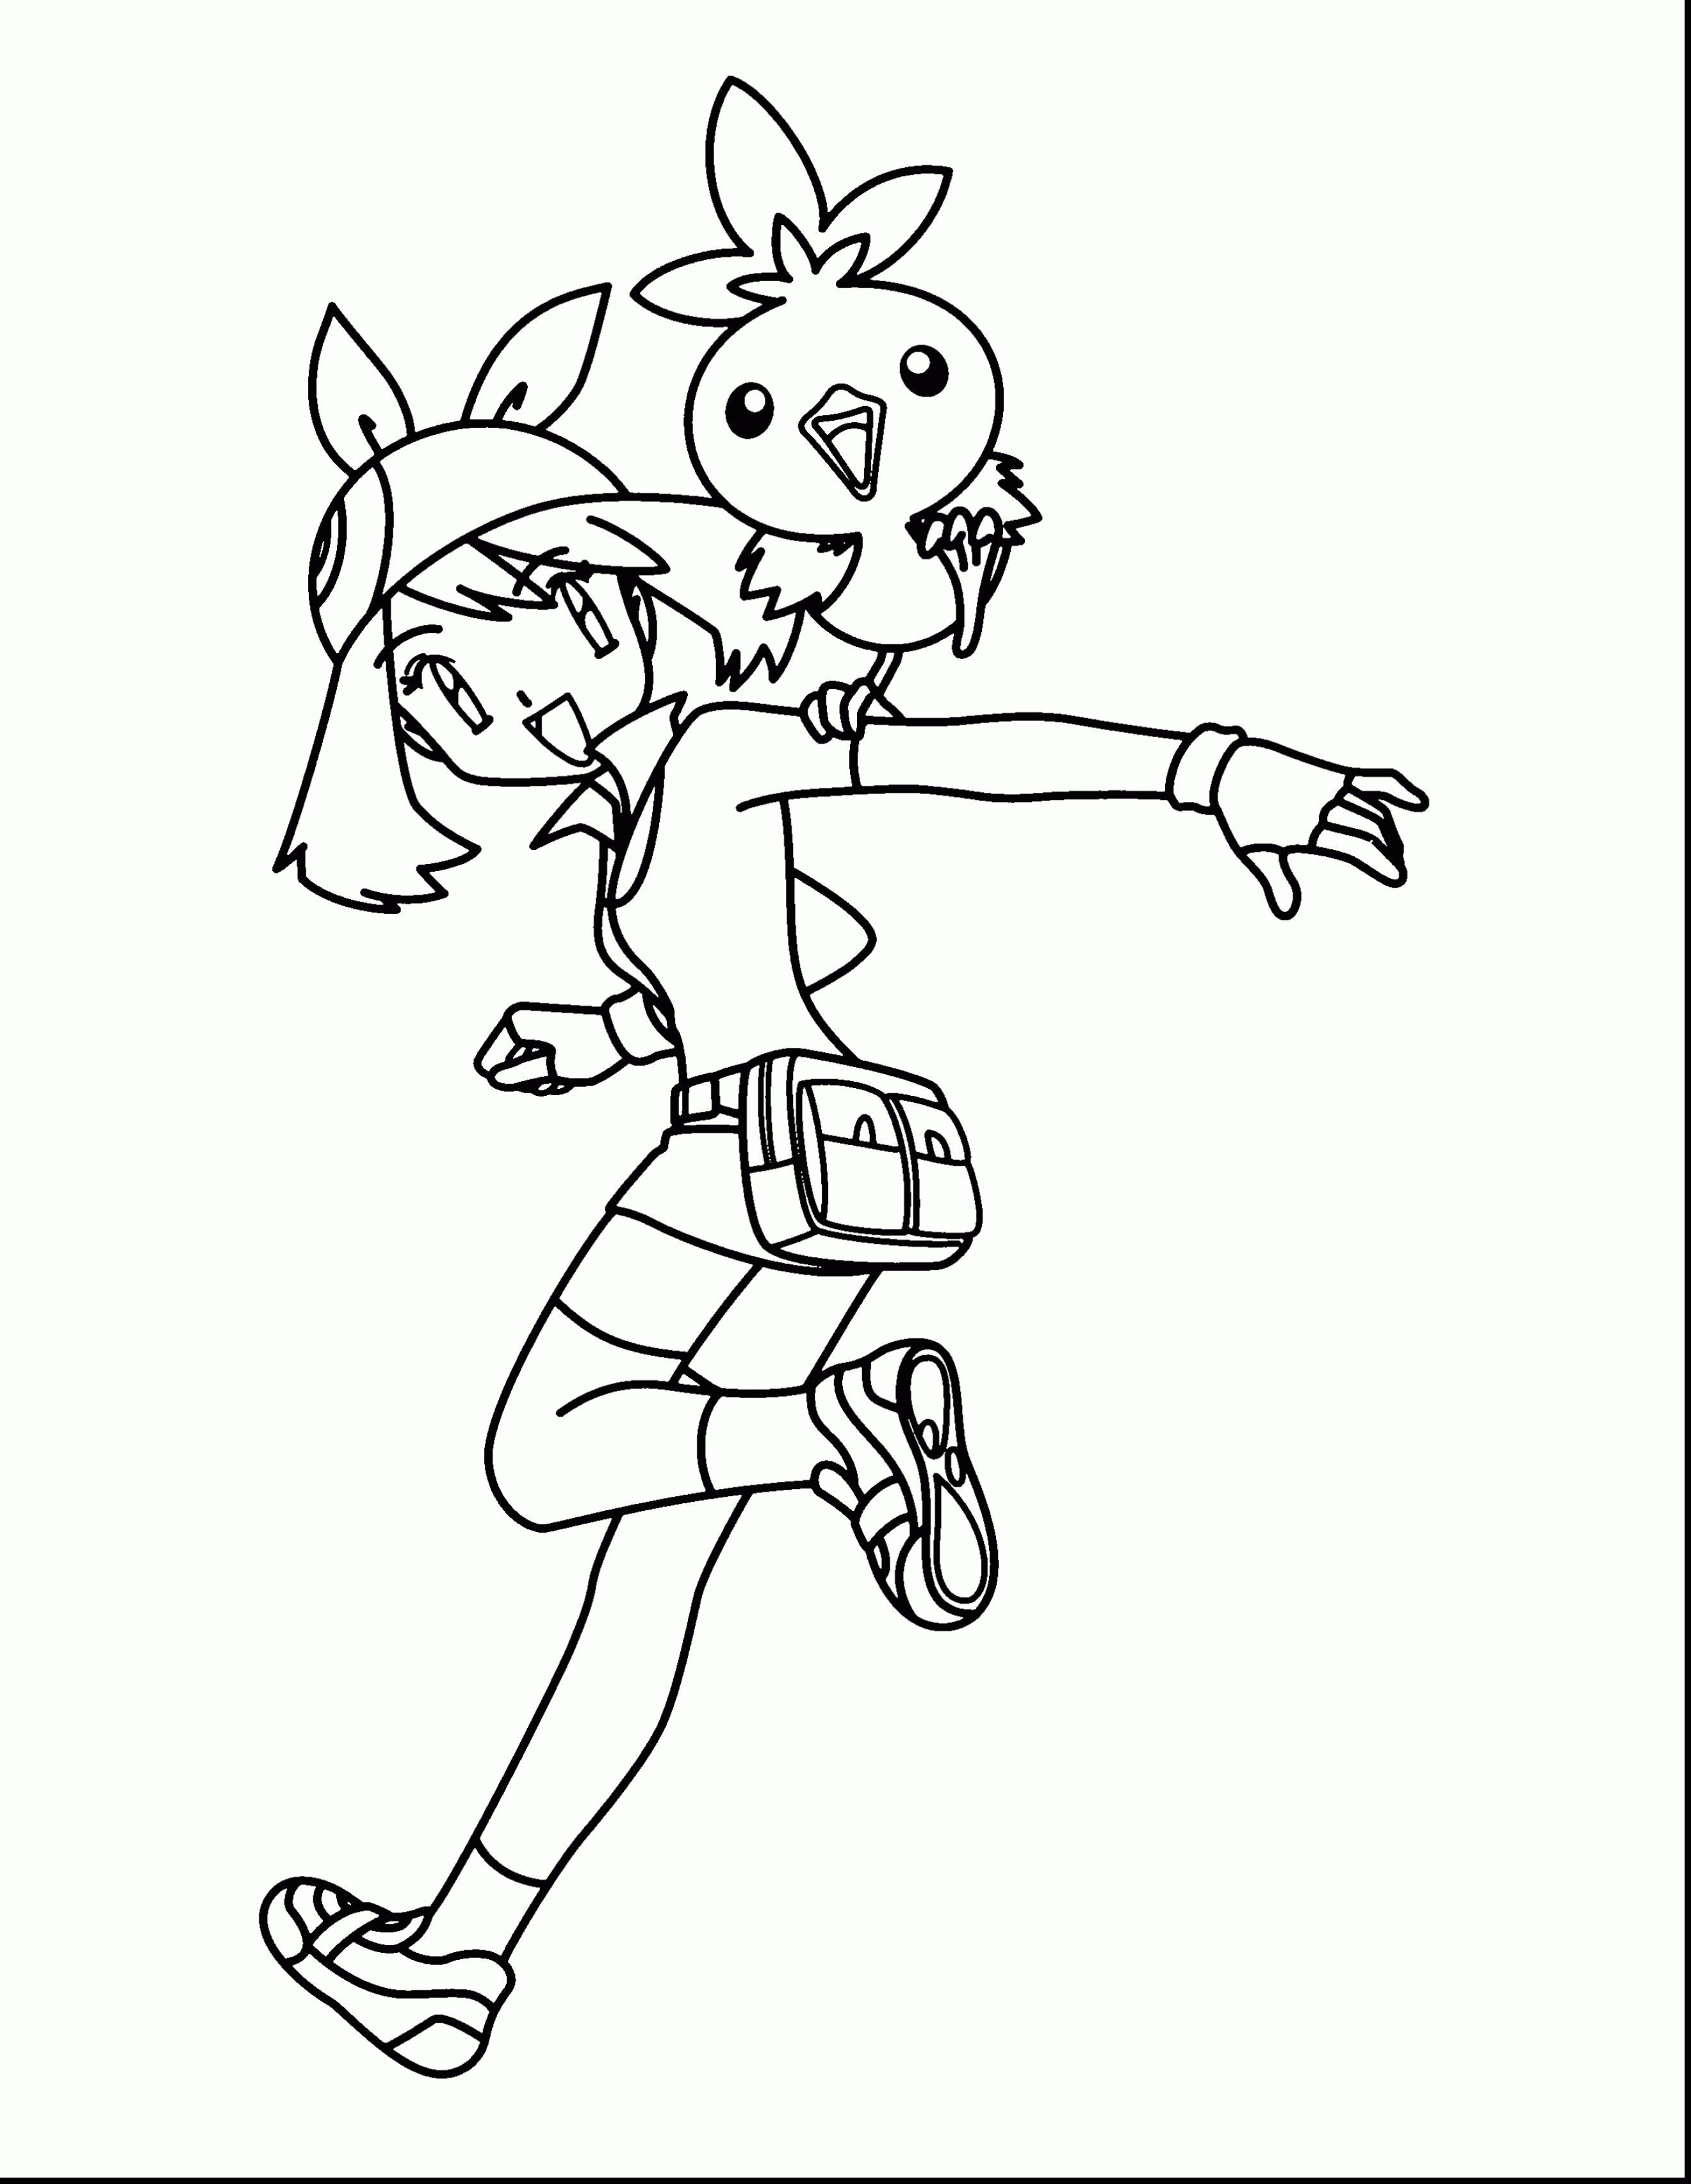 Pokemon May Coloring Pages Through The Thousand